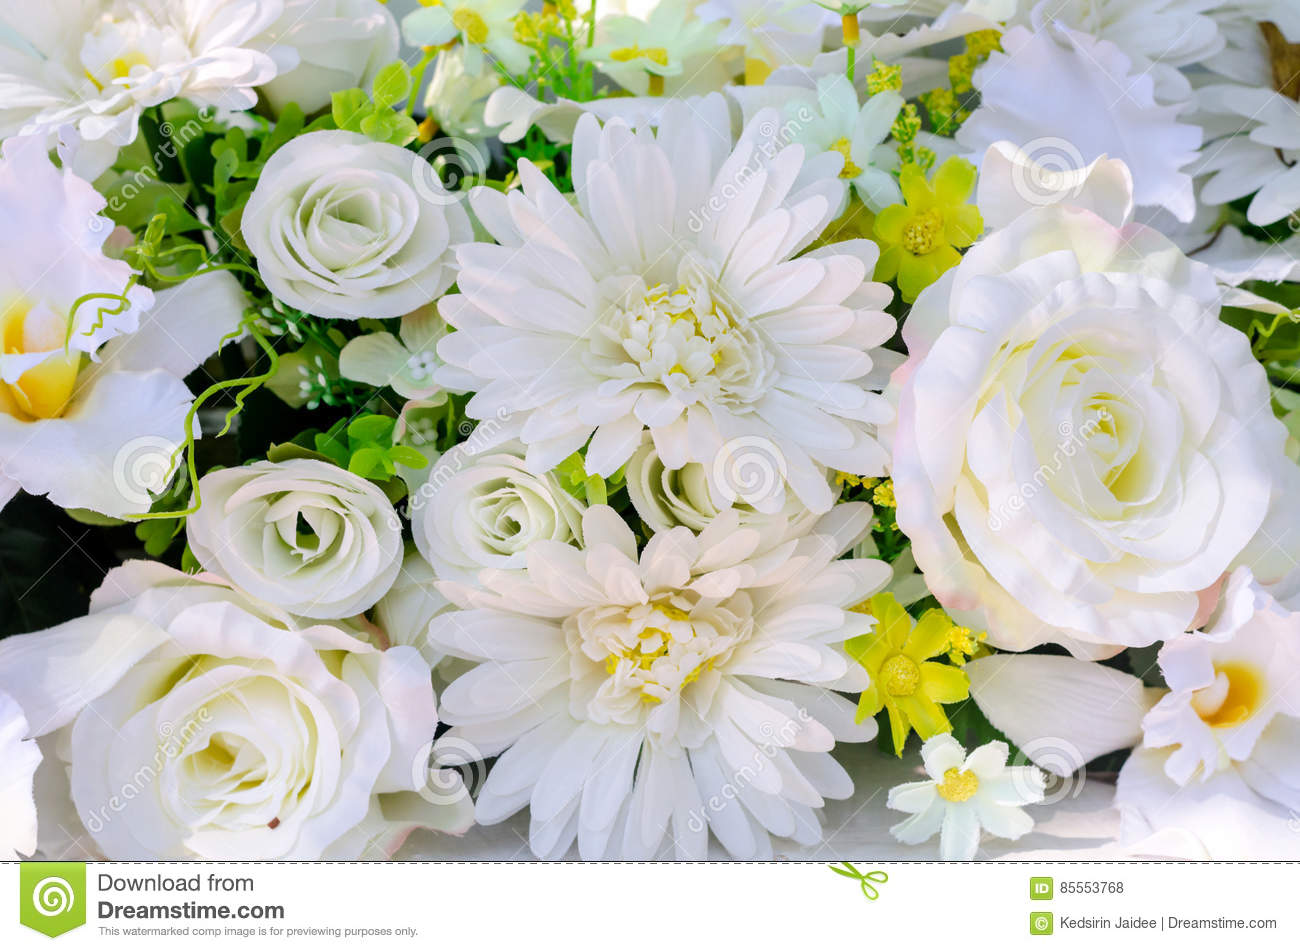 Artificial Flowers Of White Rose And Gerbera For Decoration Stock